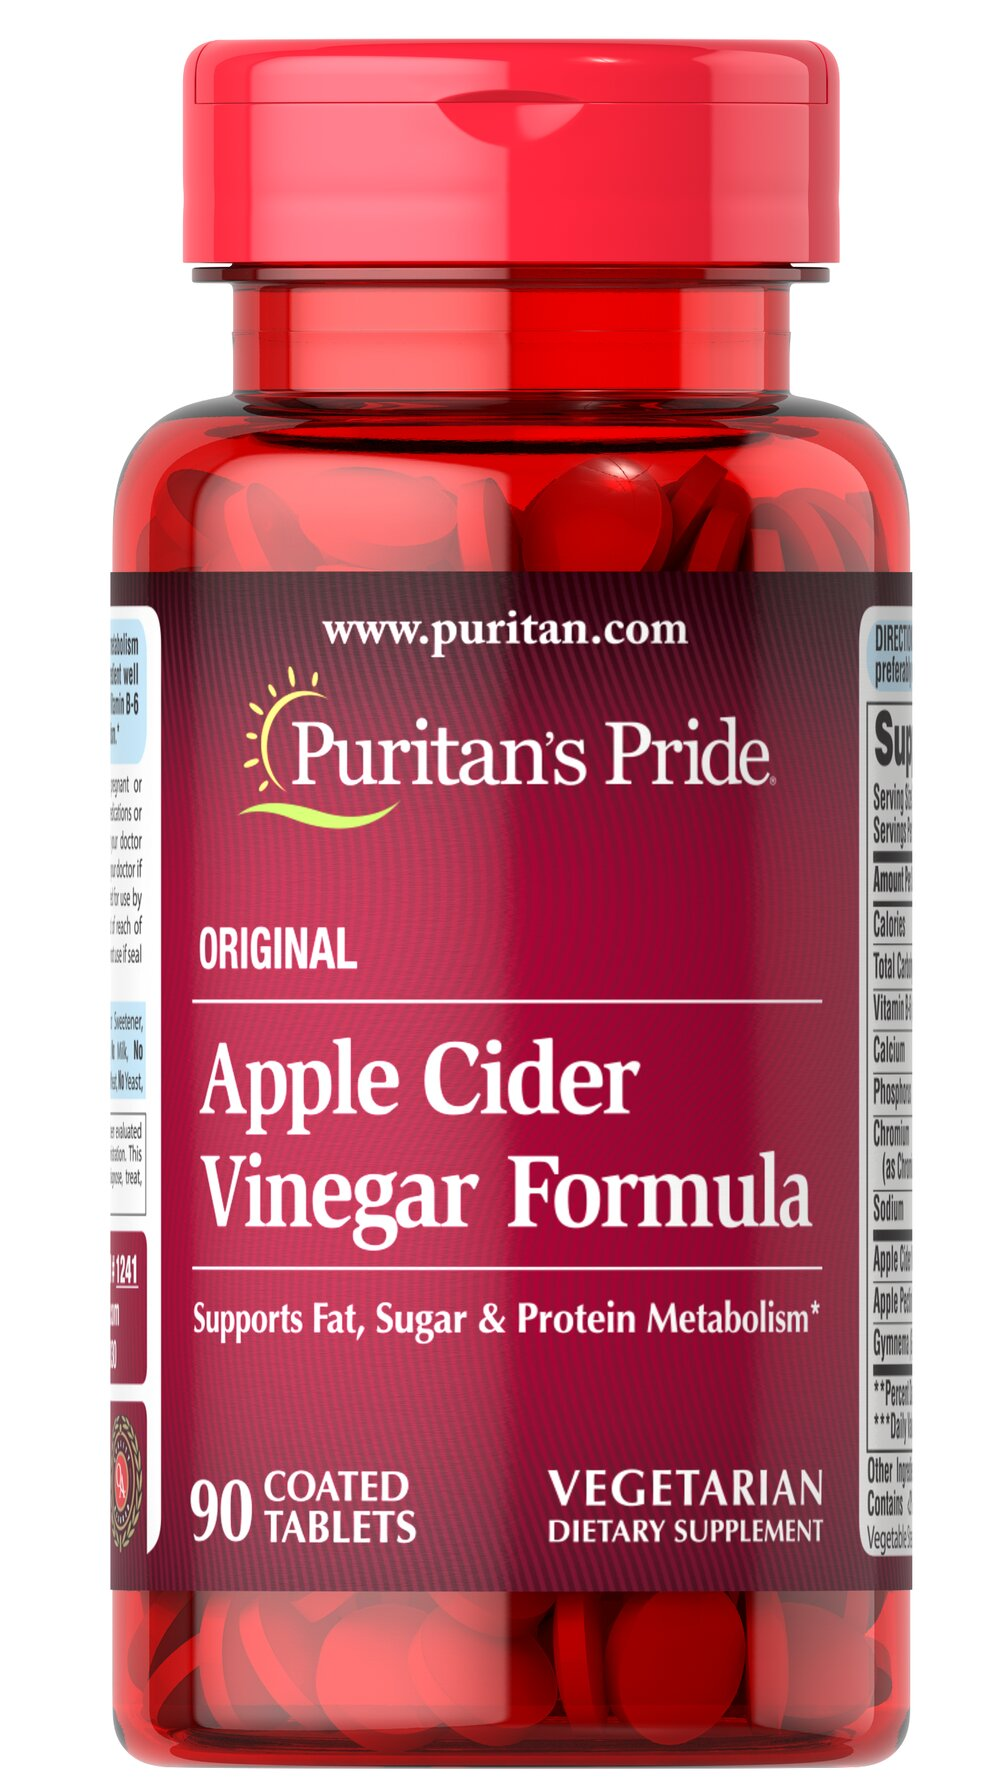 Apple Cider Vinegar Formula <p>Chances are, your mother and grandmother used Apple Cider Vinegar for a variety of purposes. As a supplement, Apple Cider Vinegar tablets are popular with fitness enthusiasts and those following healthy eating plans.</p> 90 Tablets  $12.99